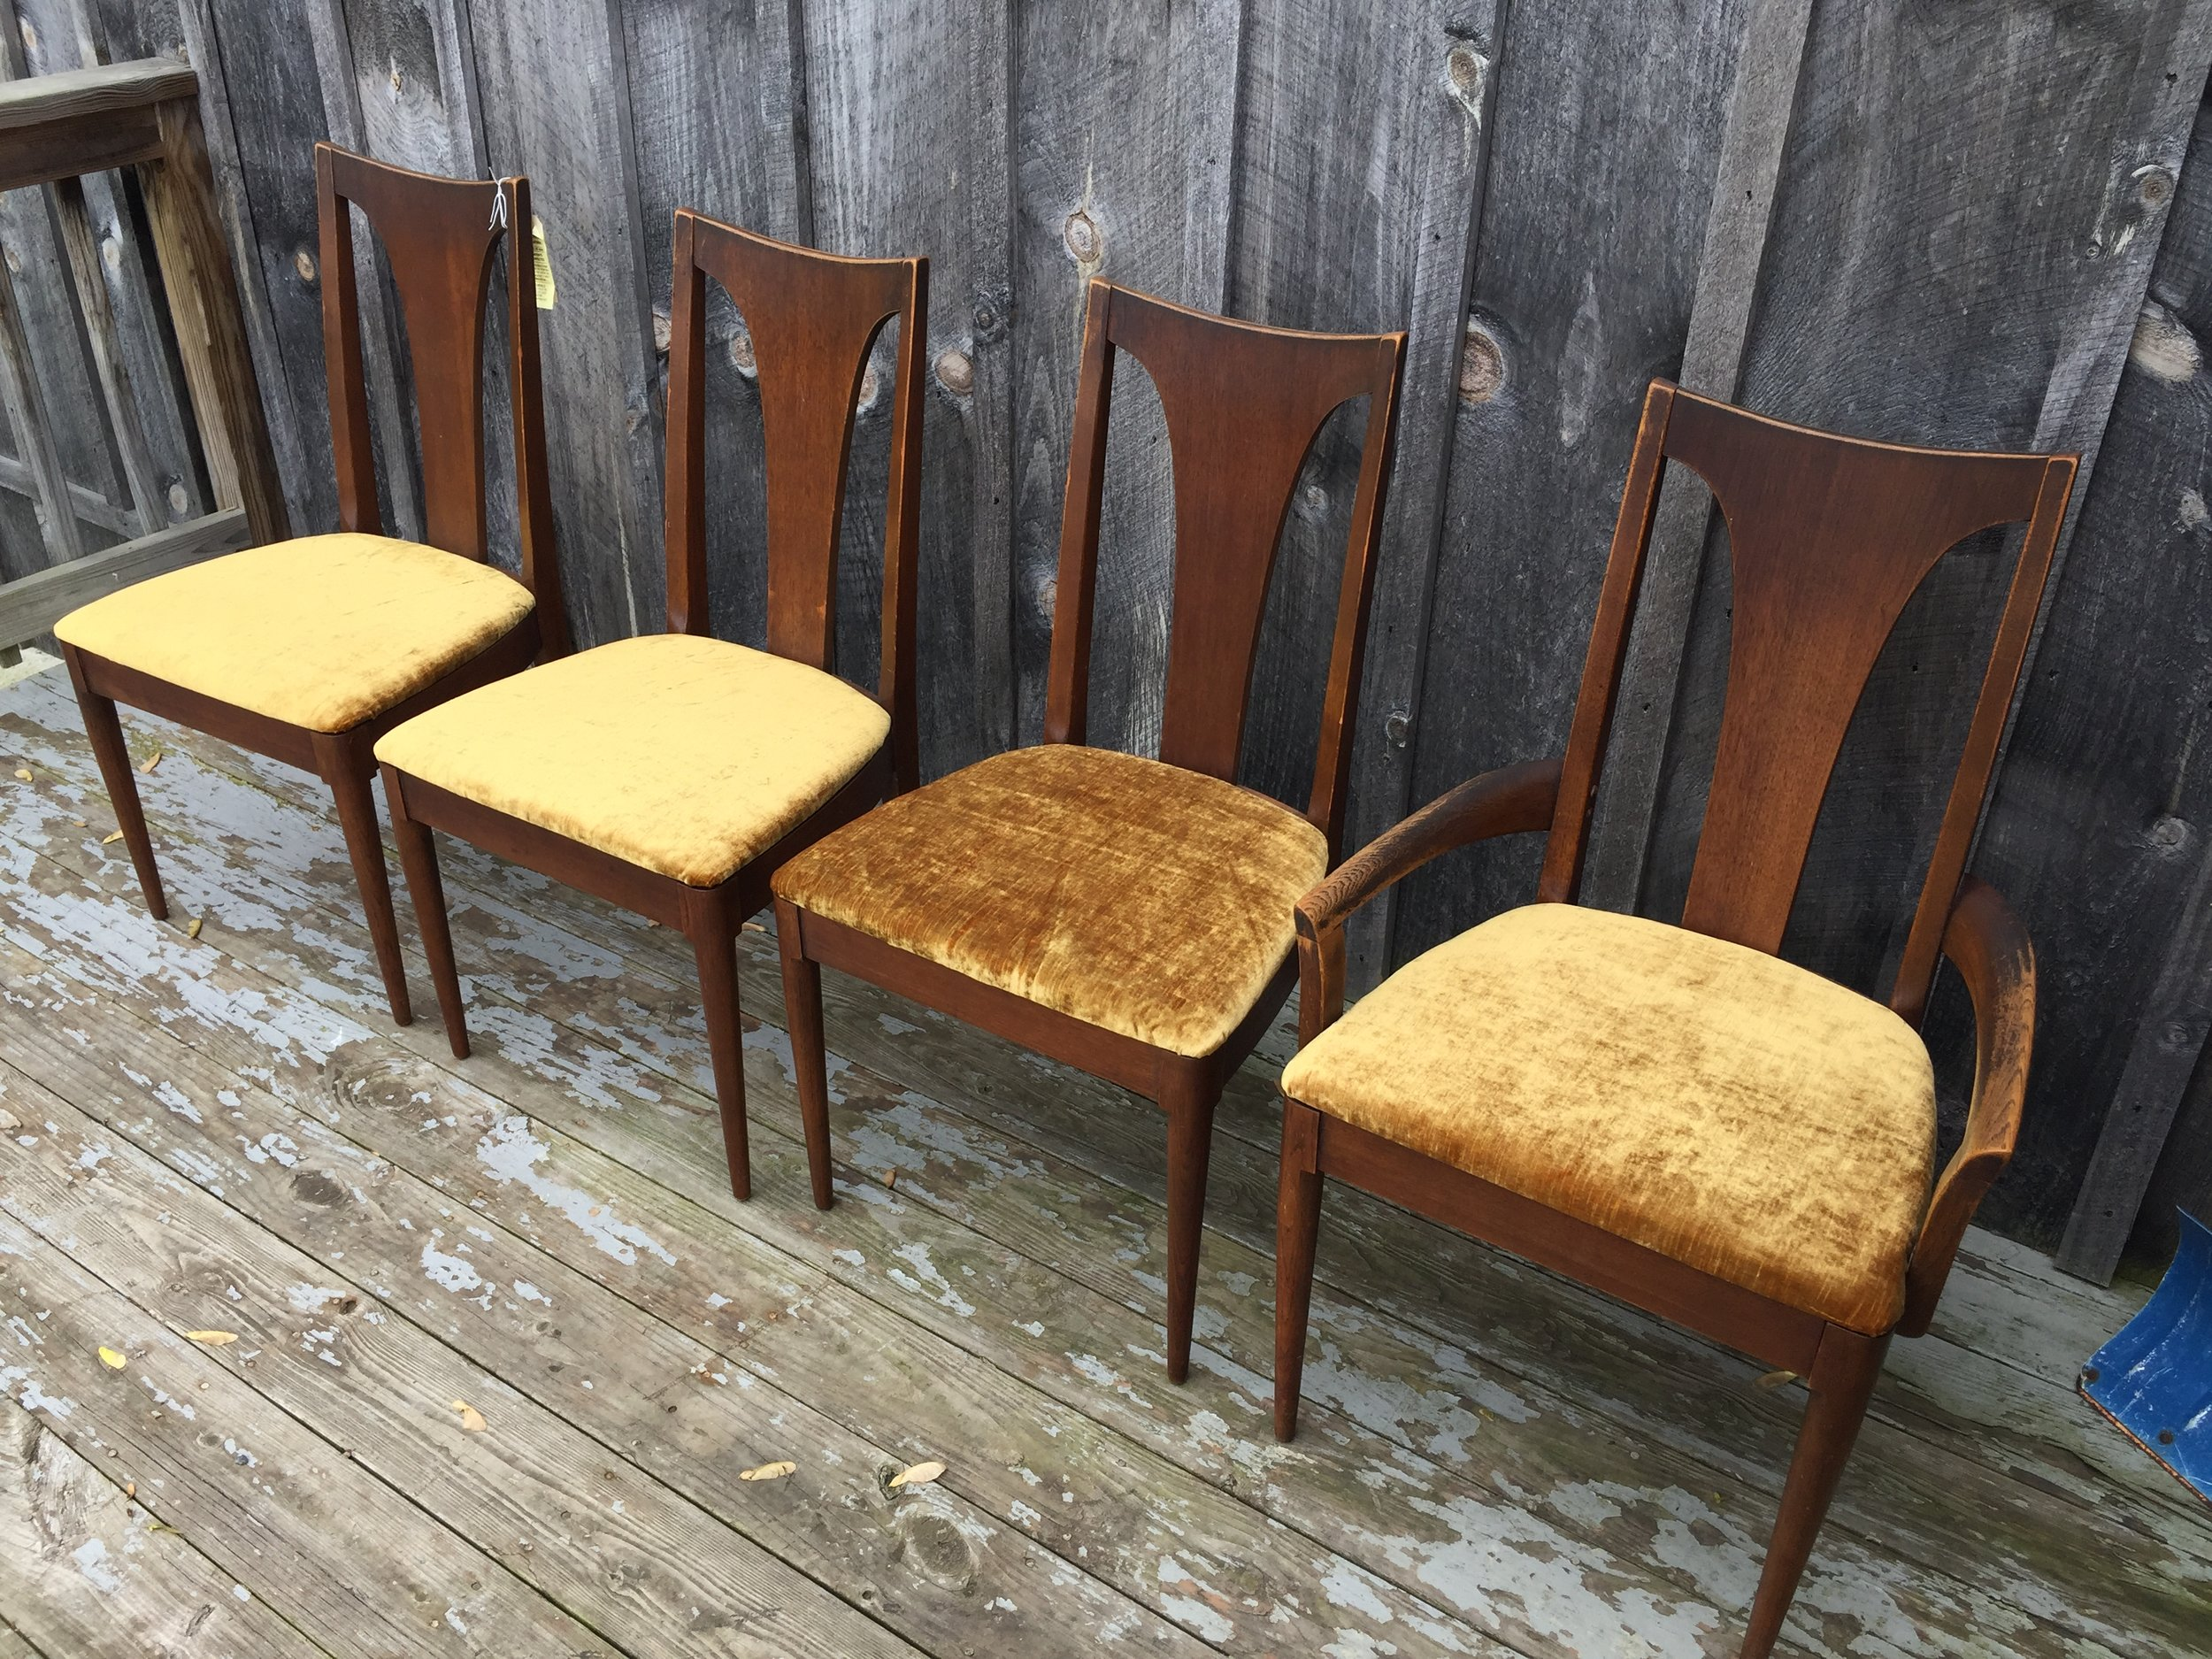 If you are interested in just the chairs, I can bus ship them for $150 additional.  Chairs alone $400.